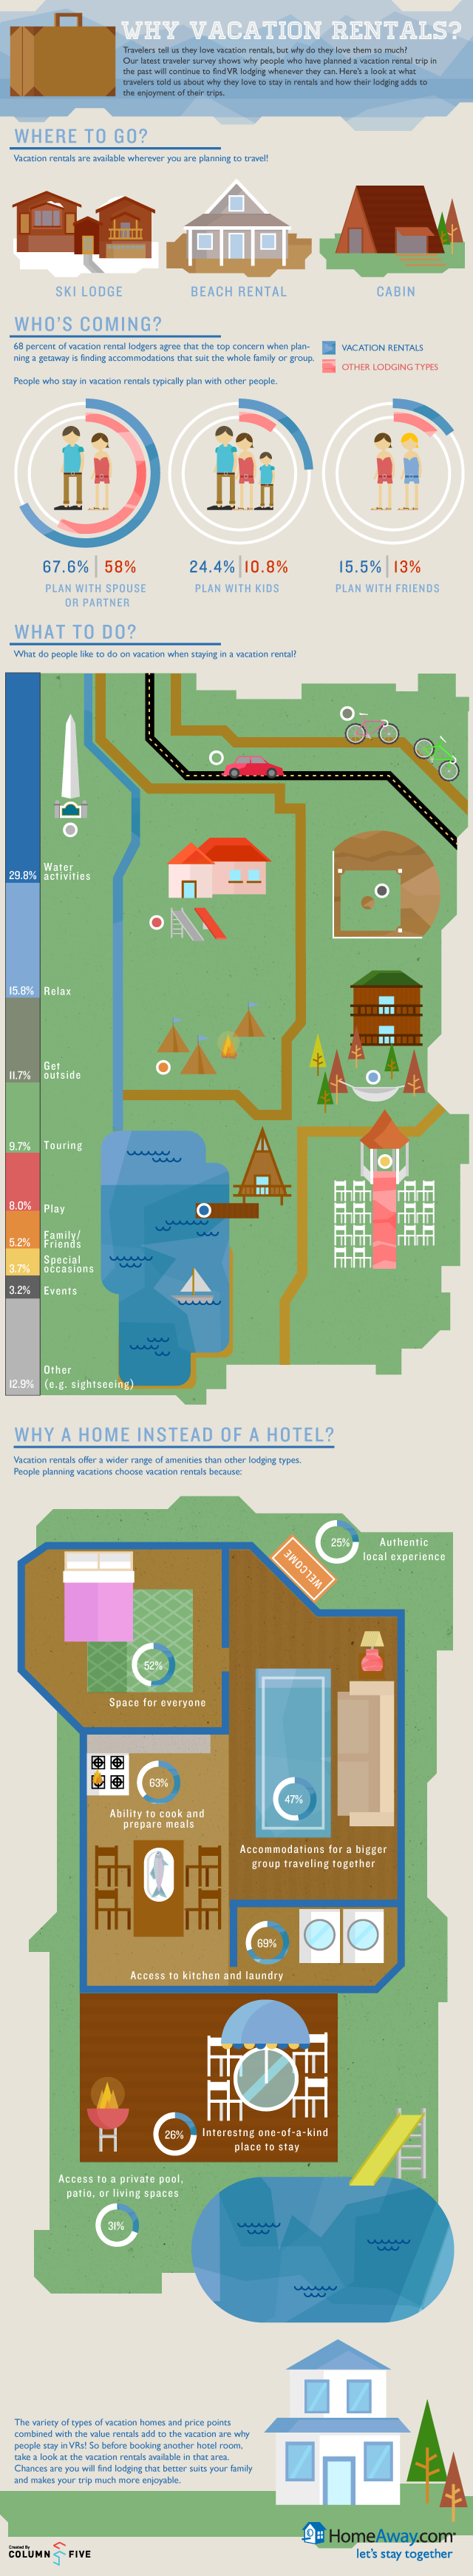 Why Vacation Rentals A Traveler Survey From Homeaway Orlando Vacation Home Rentals Vacation Rental Management Unique Vacations